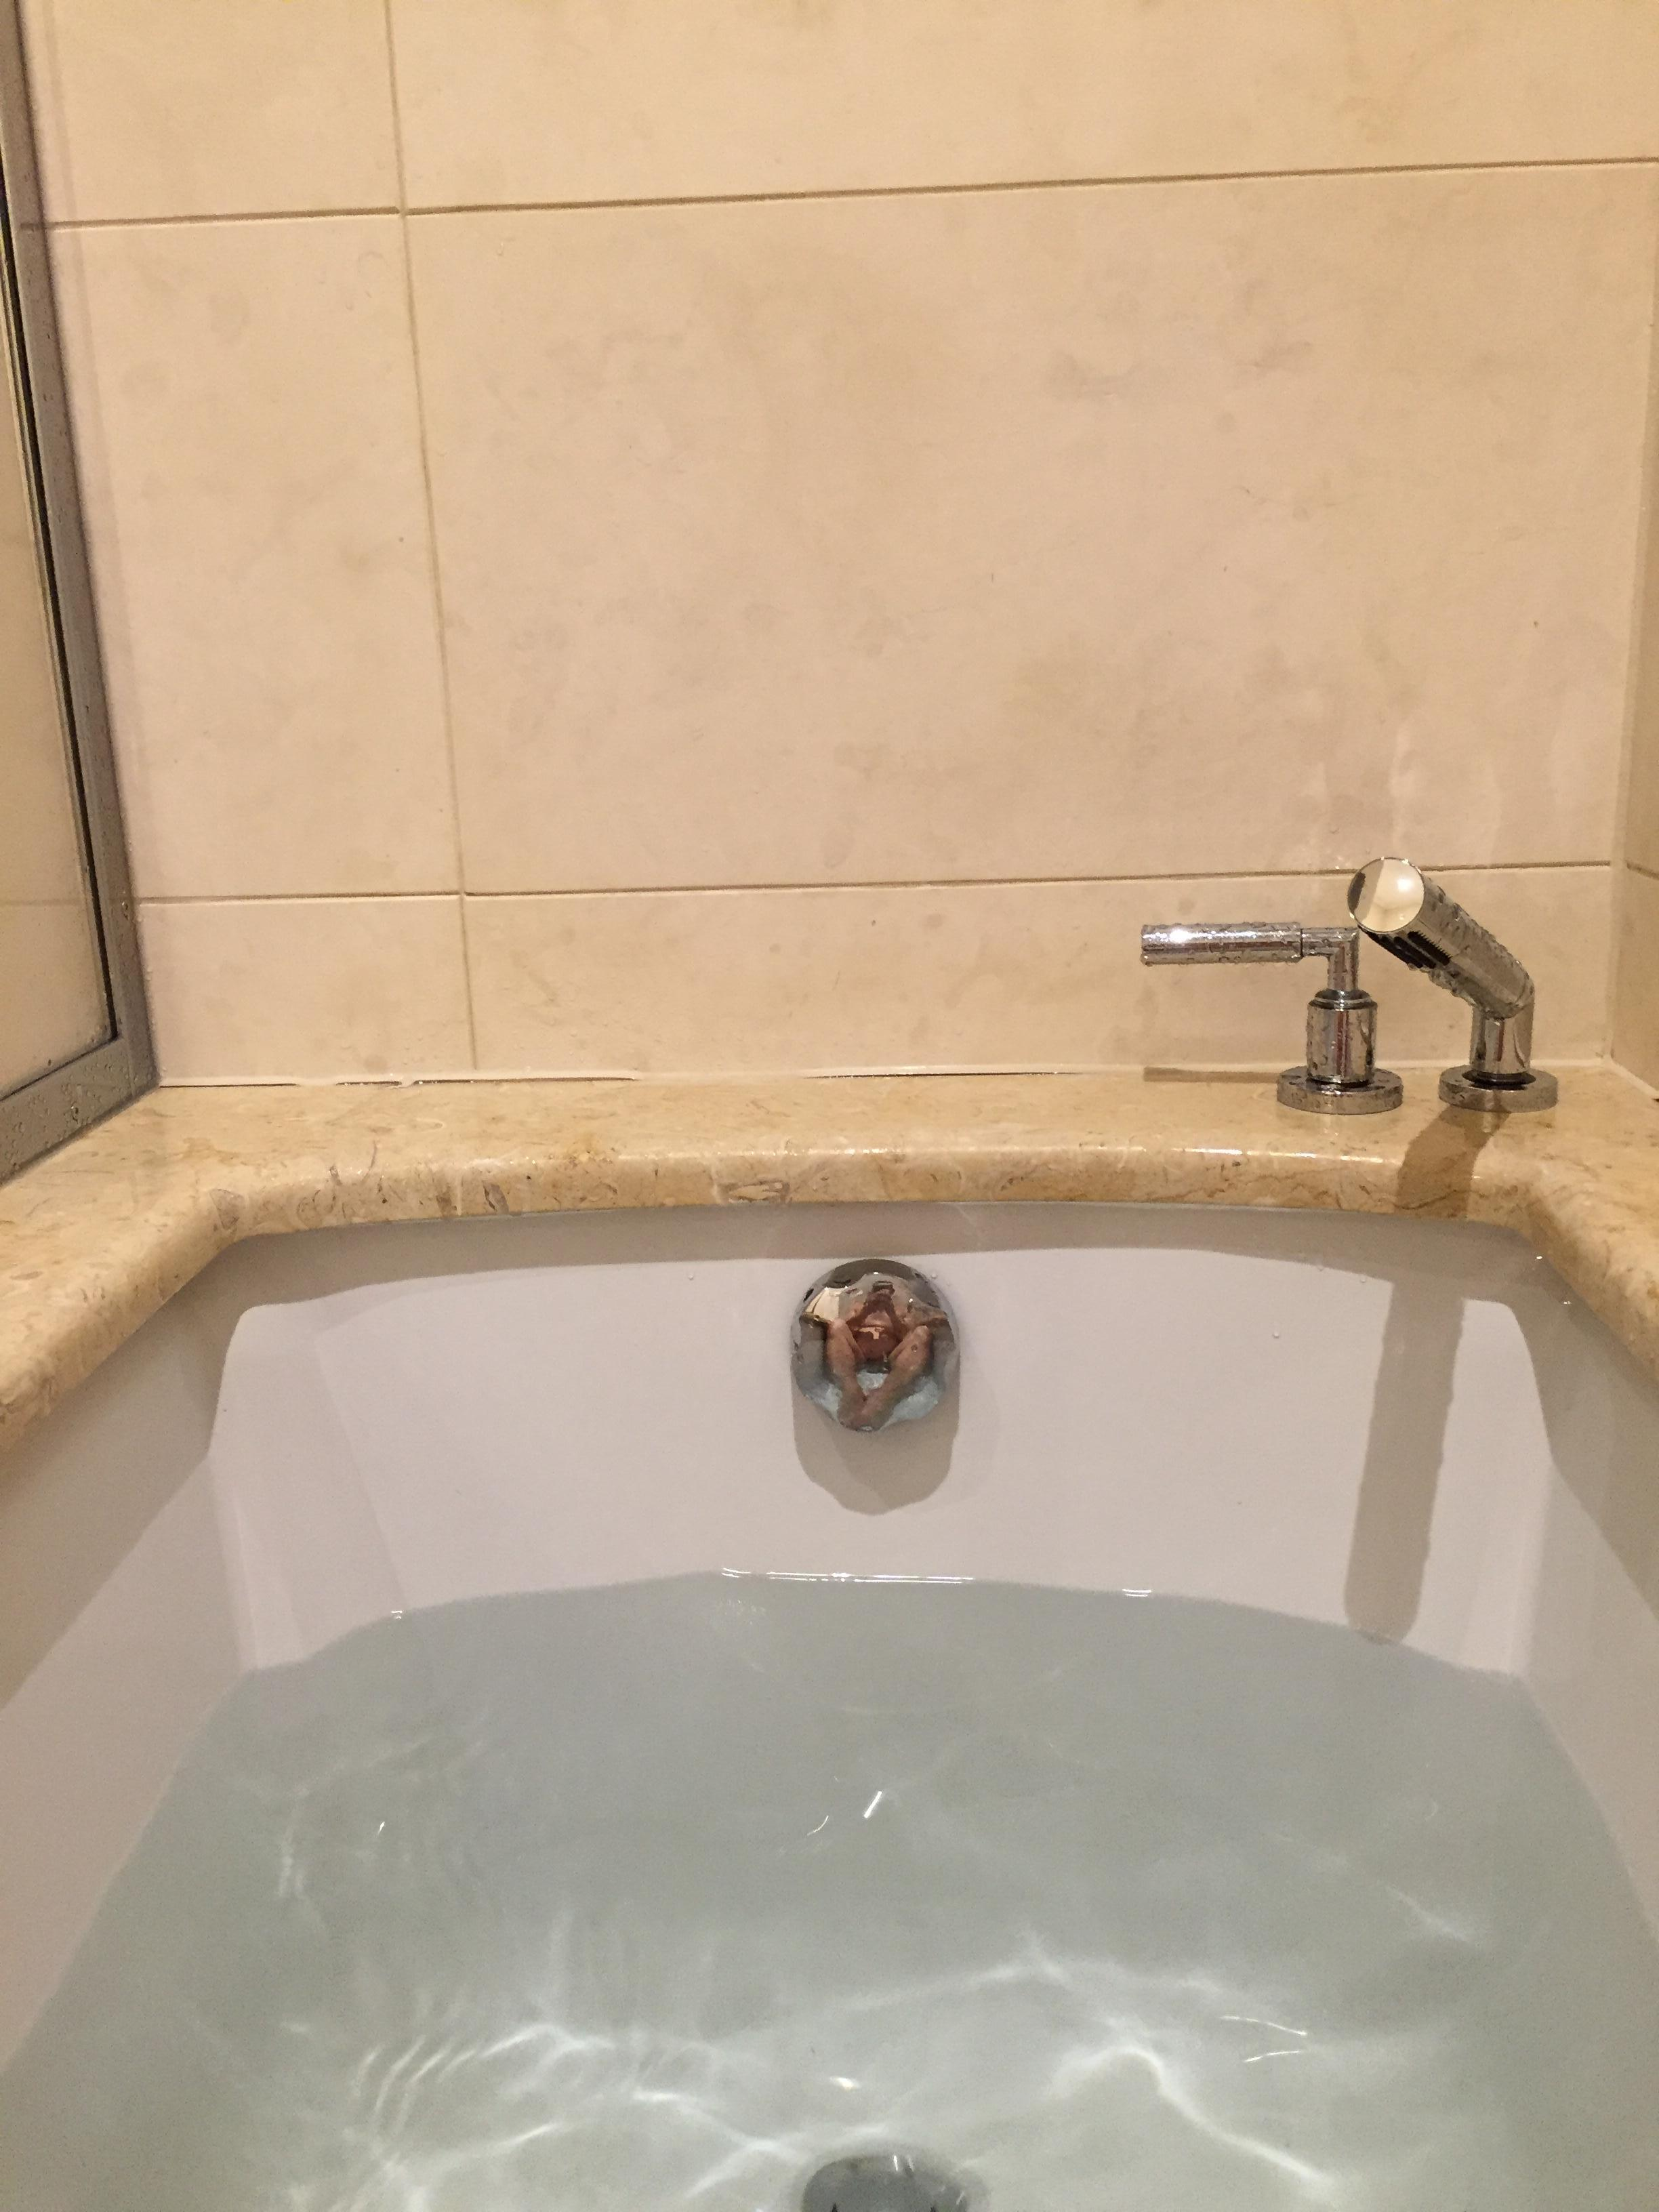 Bath you can't fit in